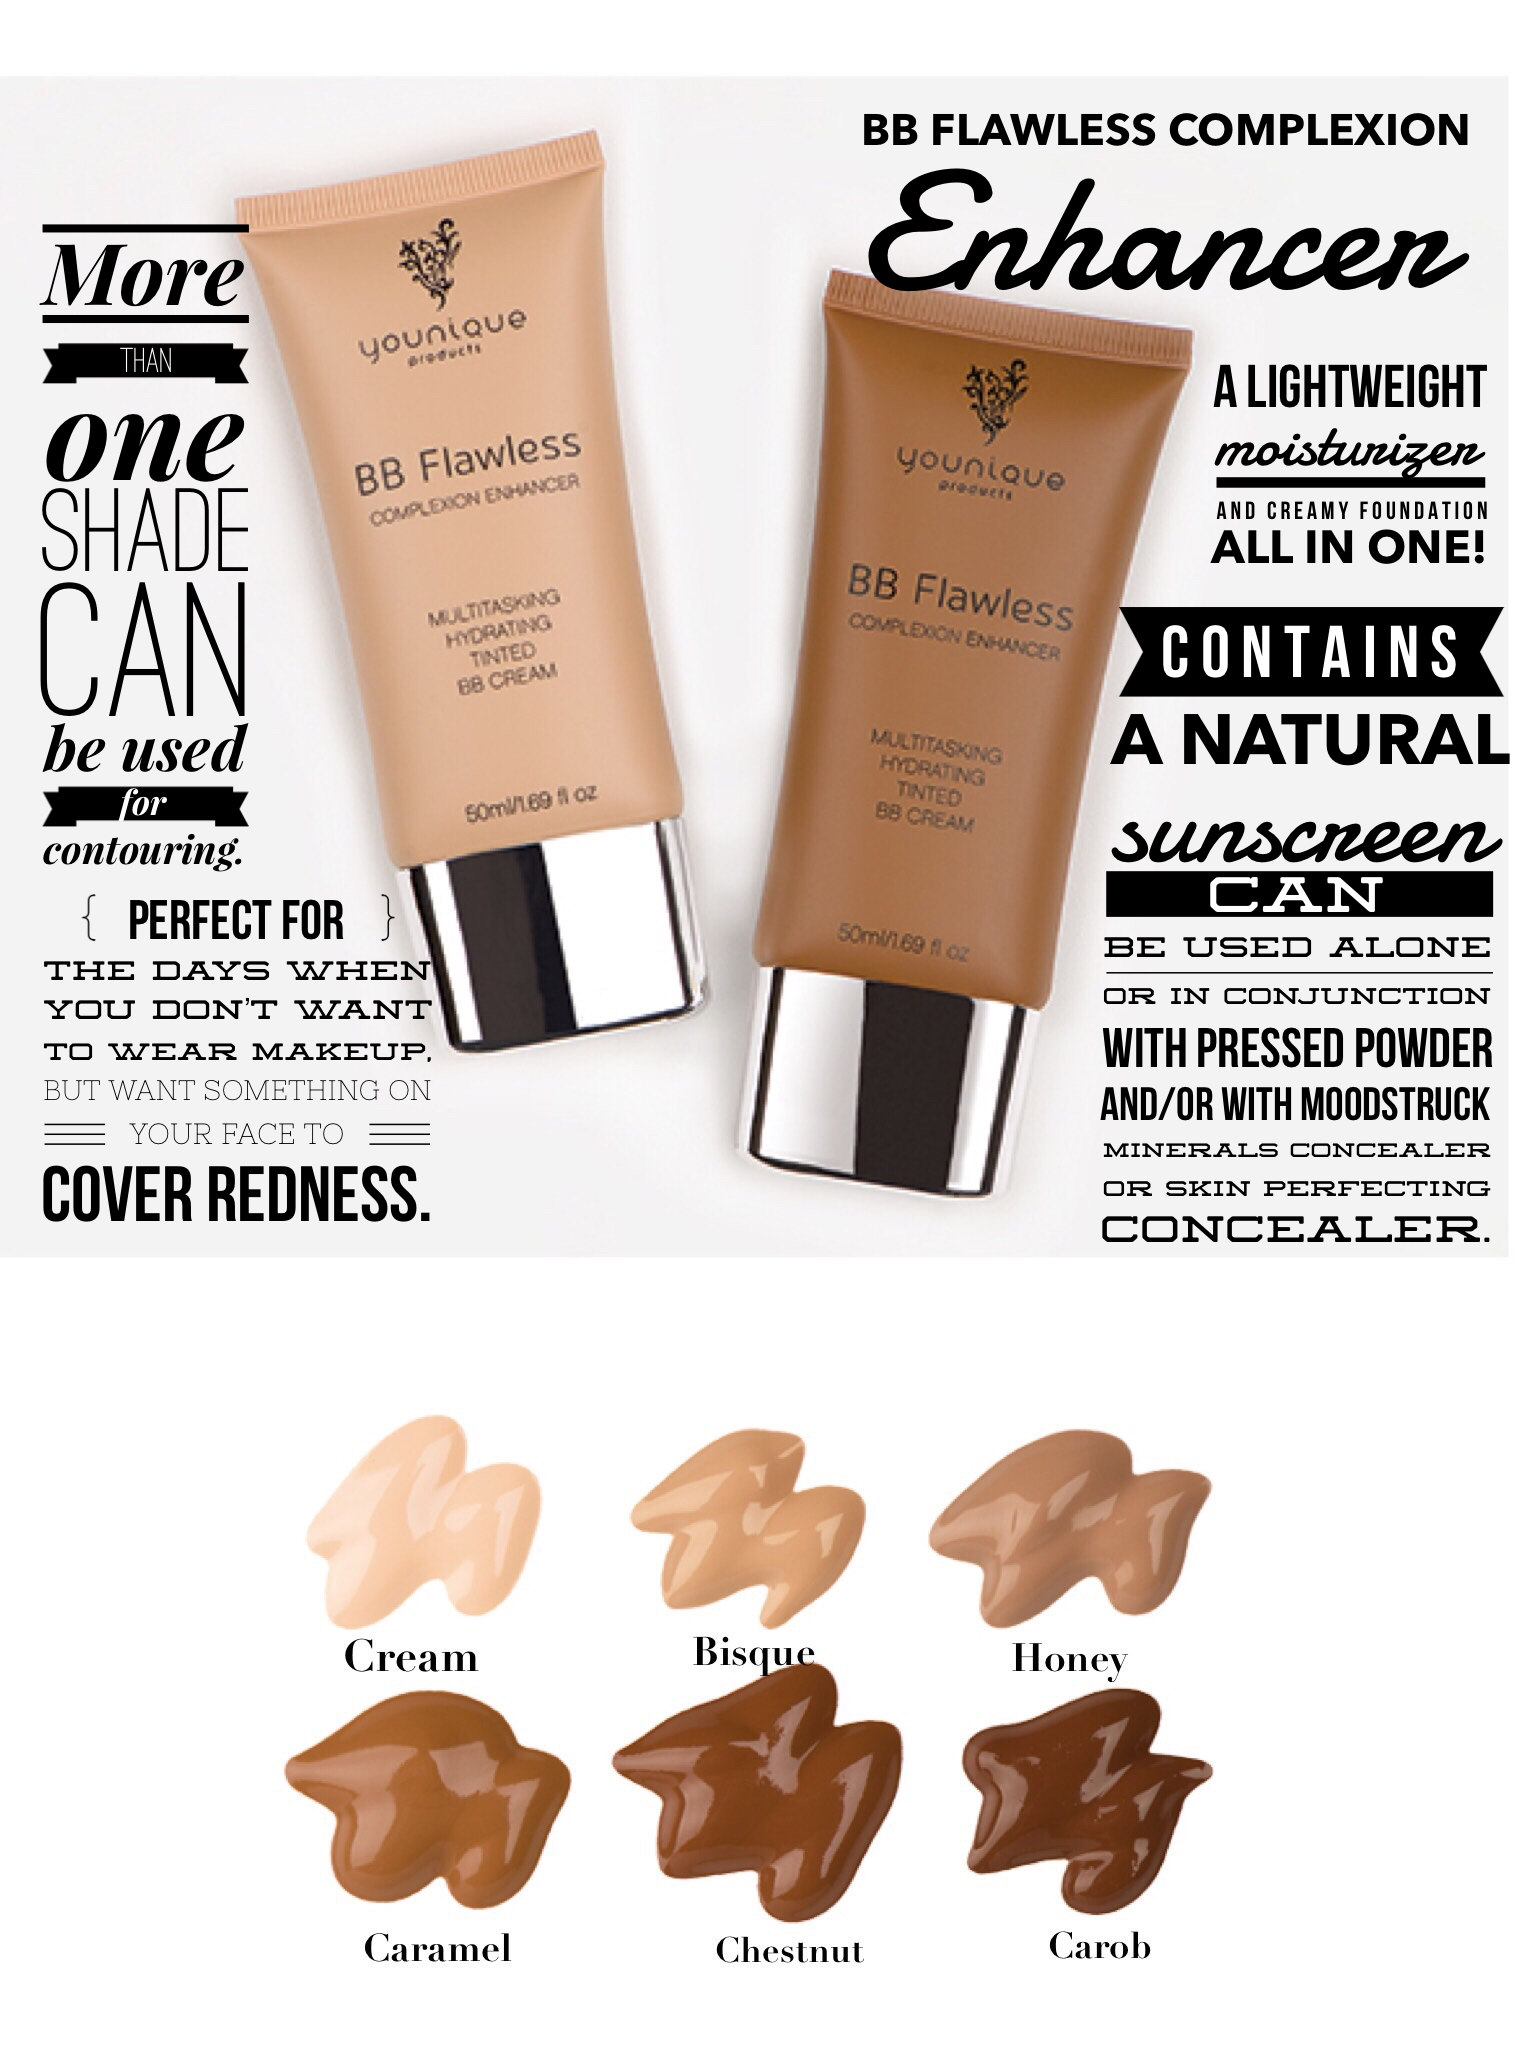 Younique's BB Flawless Complexion Enhancer provides